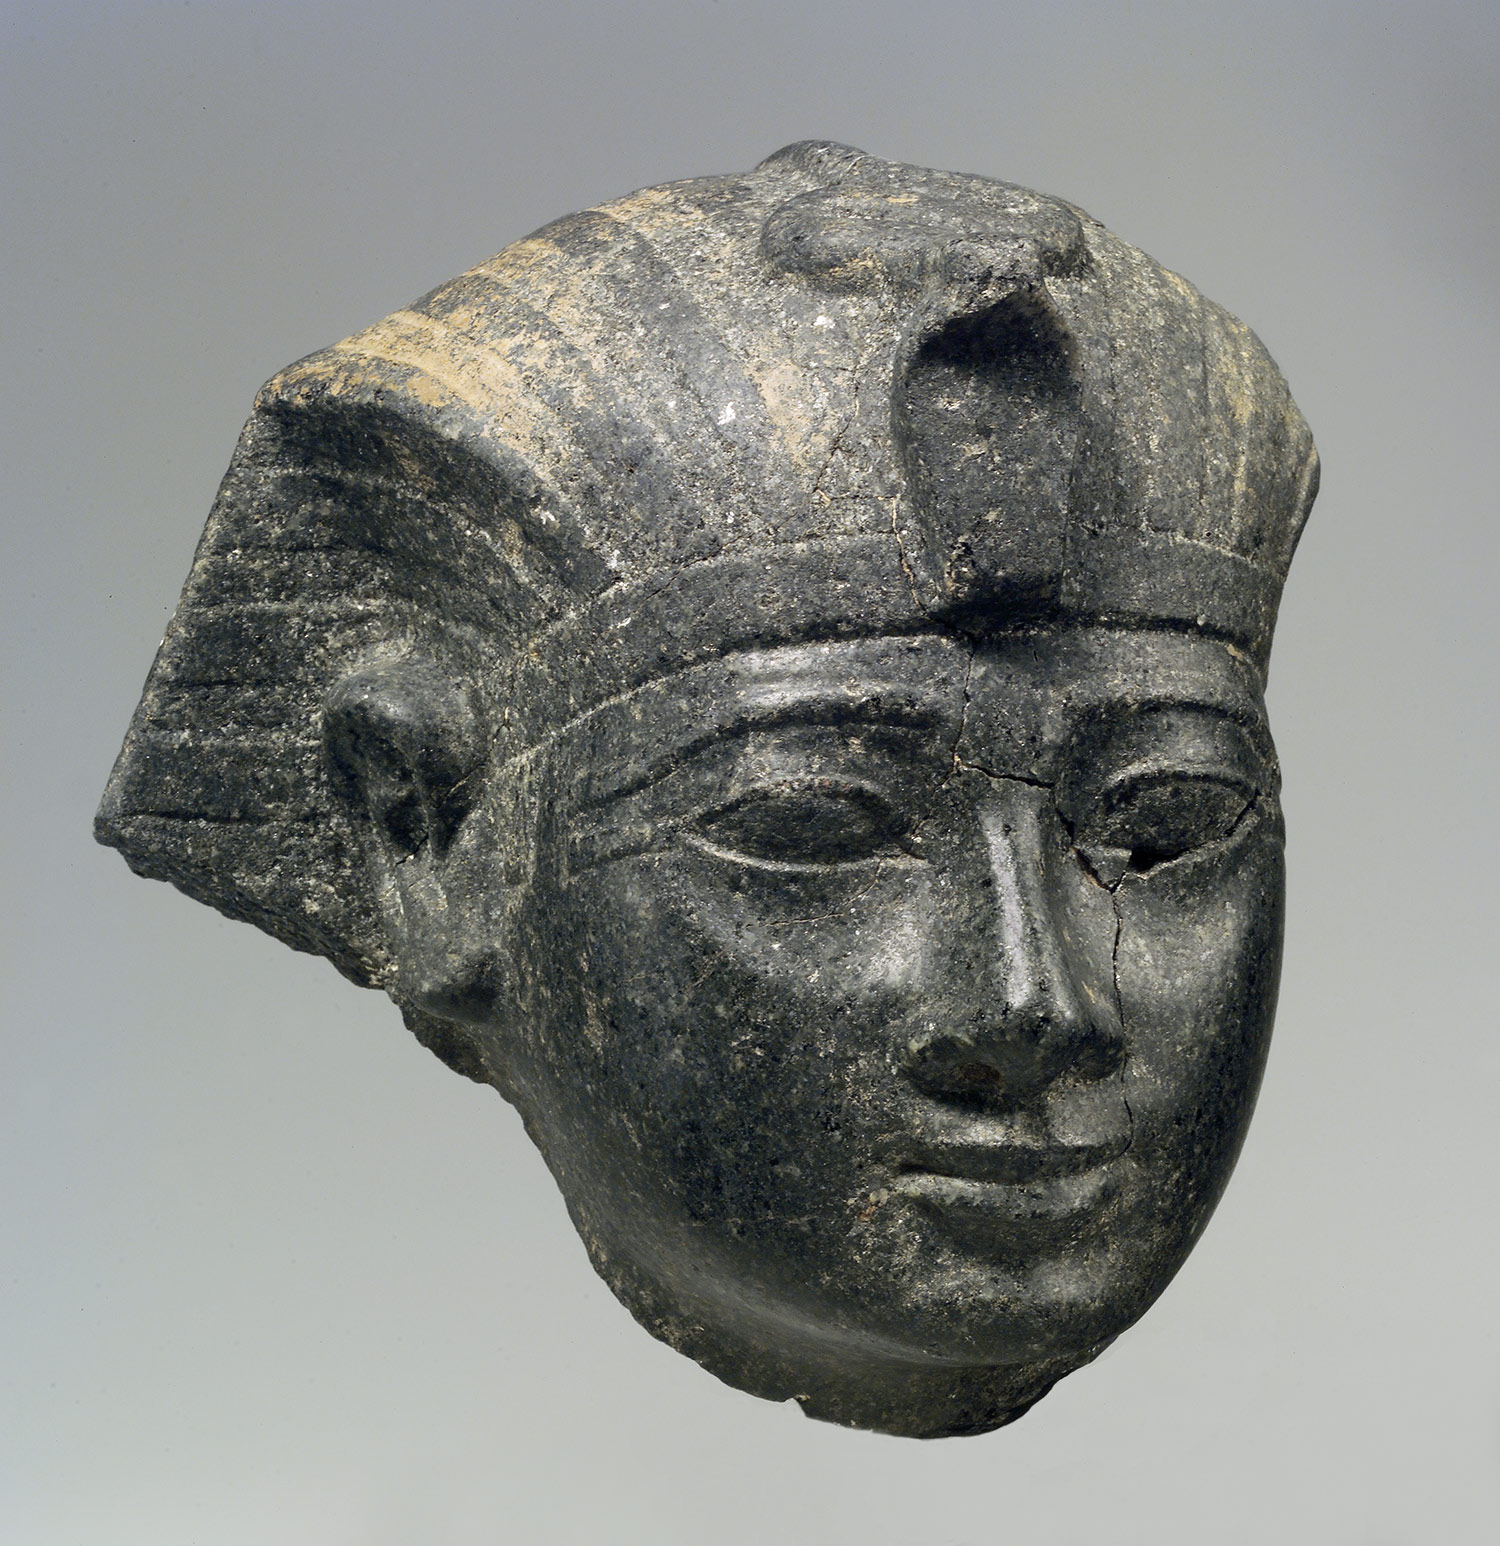 Head of Amenhotep II [Egyptian] (66.99.20) |